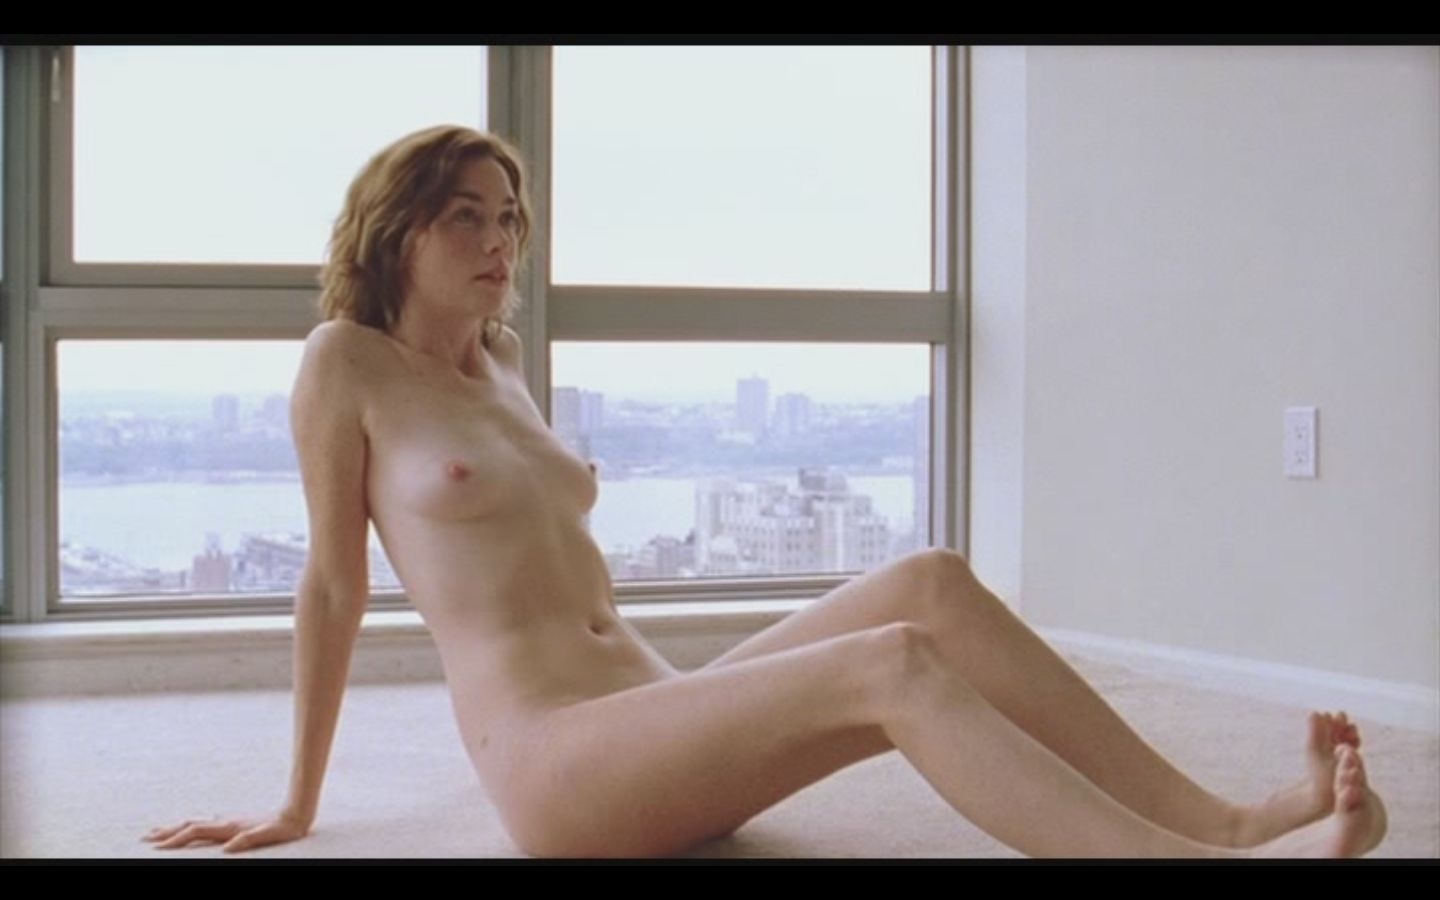 Nudist girl staring at erection